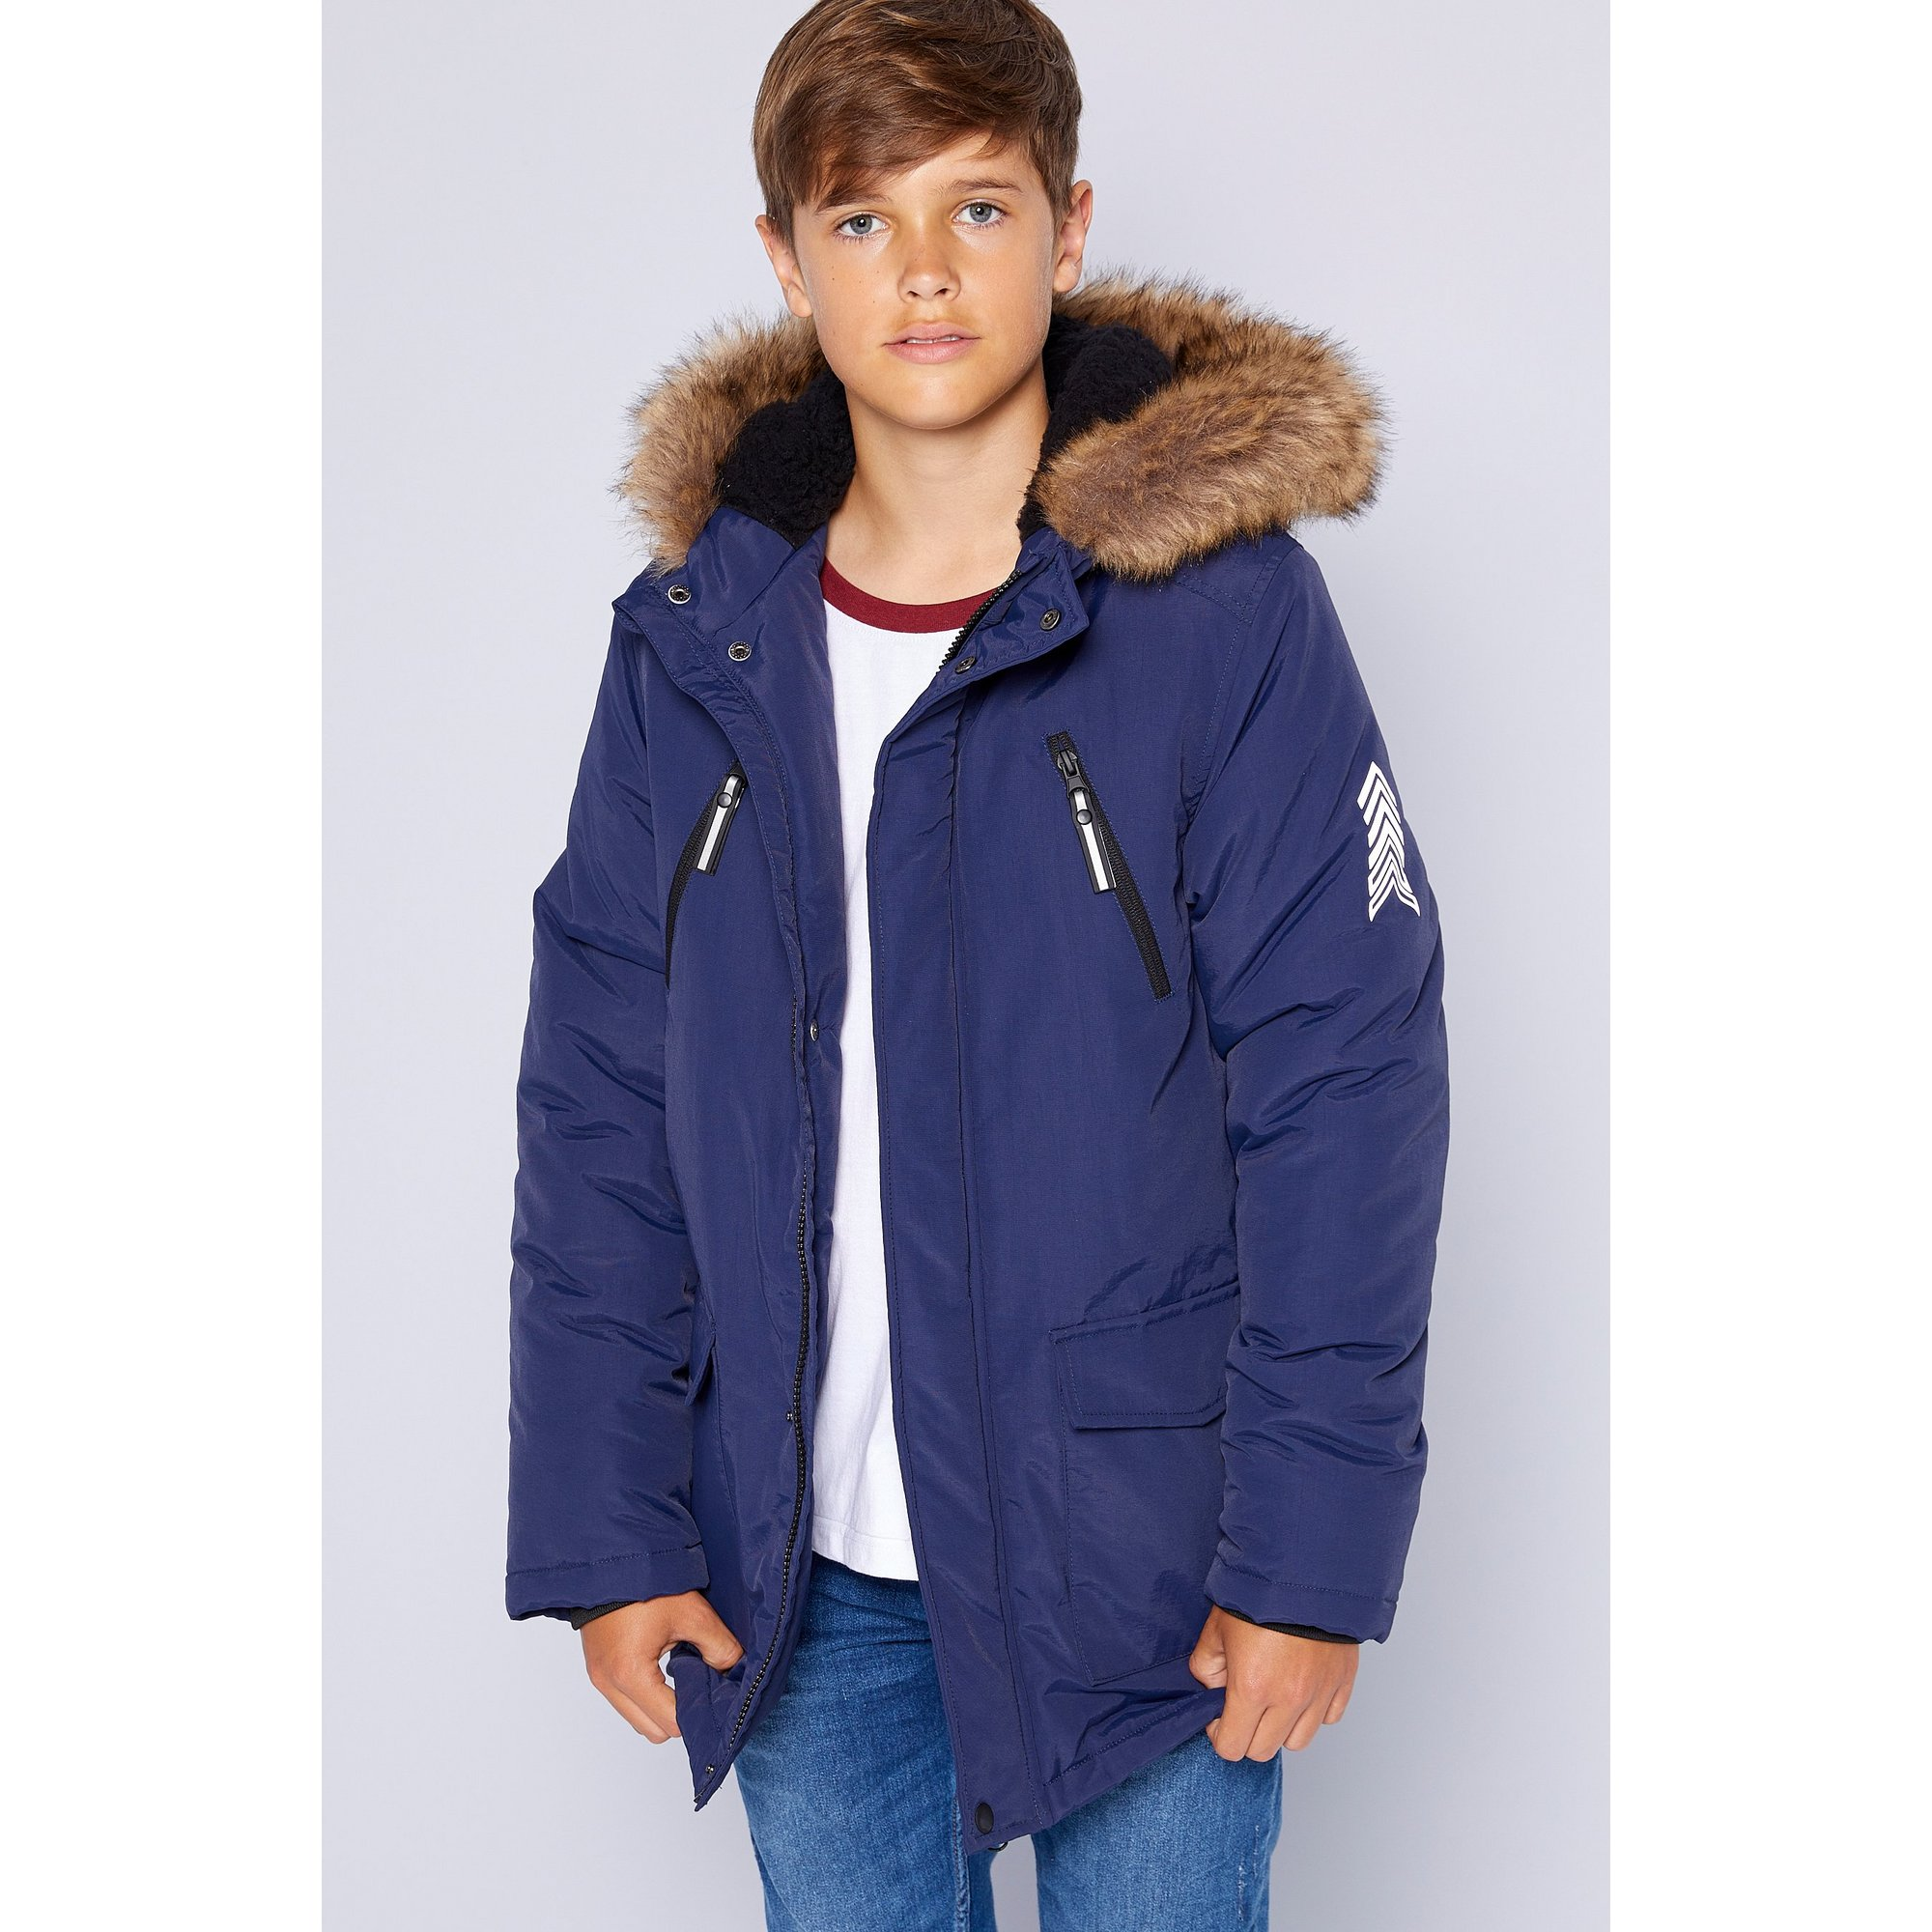 Image of Boys Borg Hooded Zip Front Navy Parka